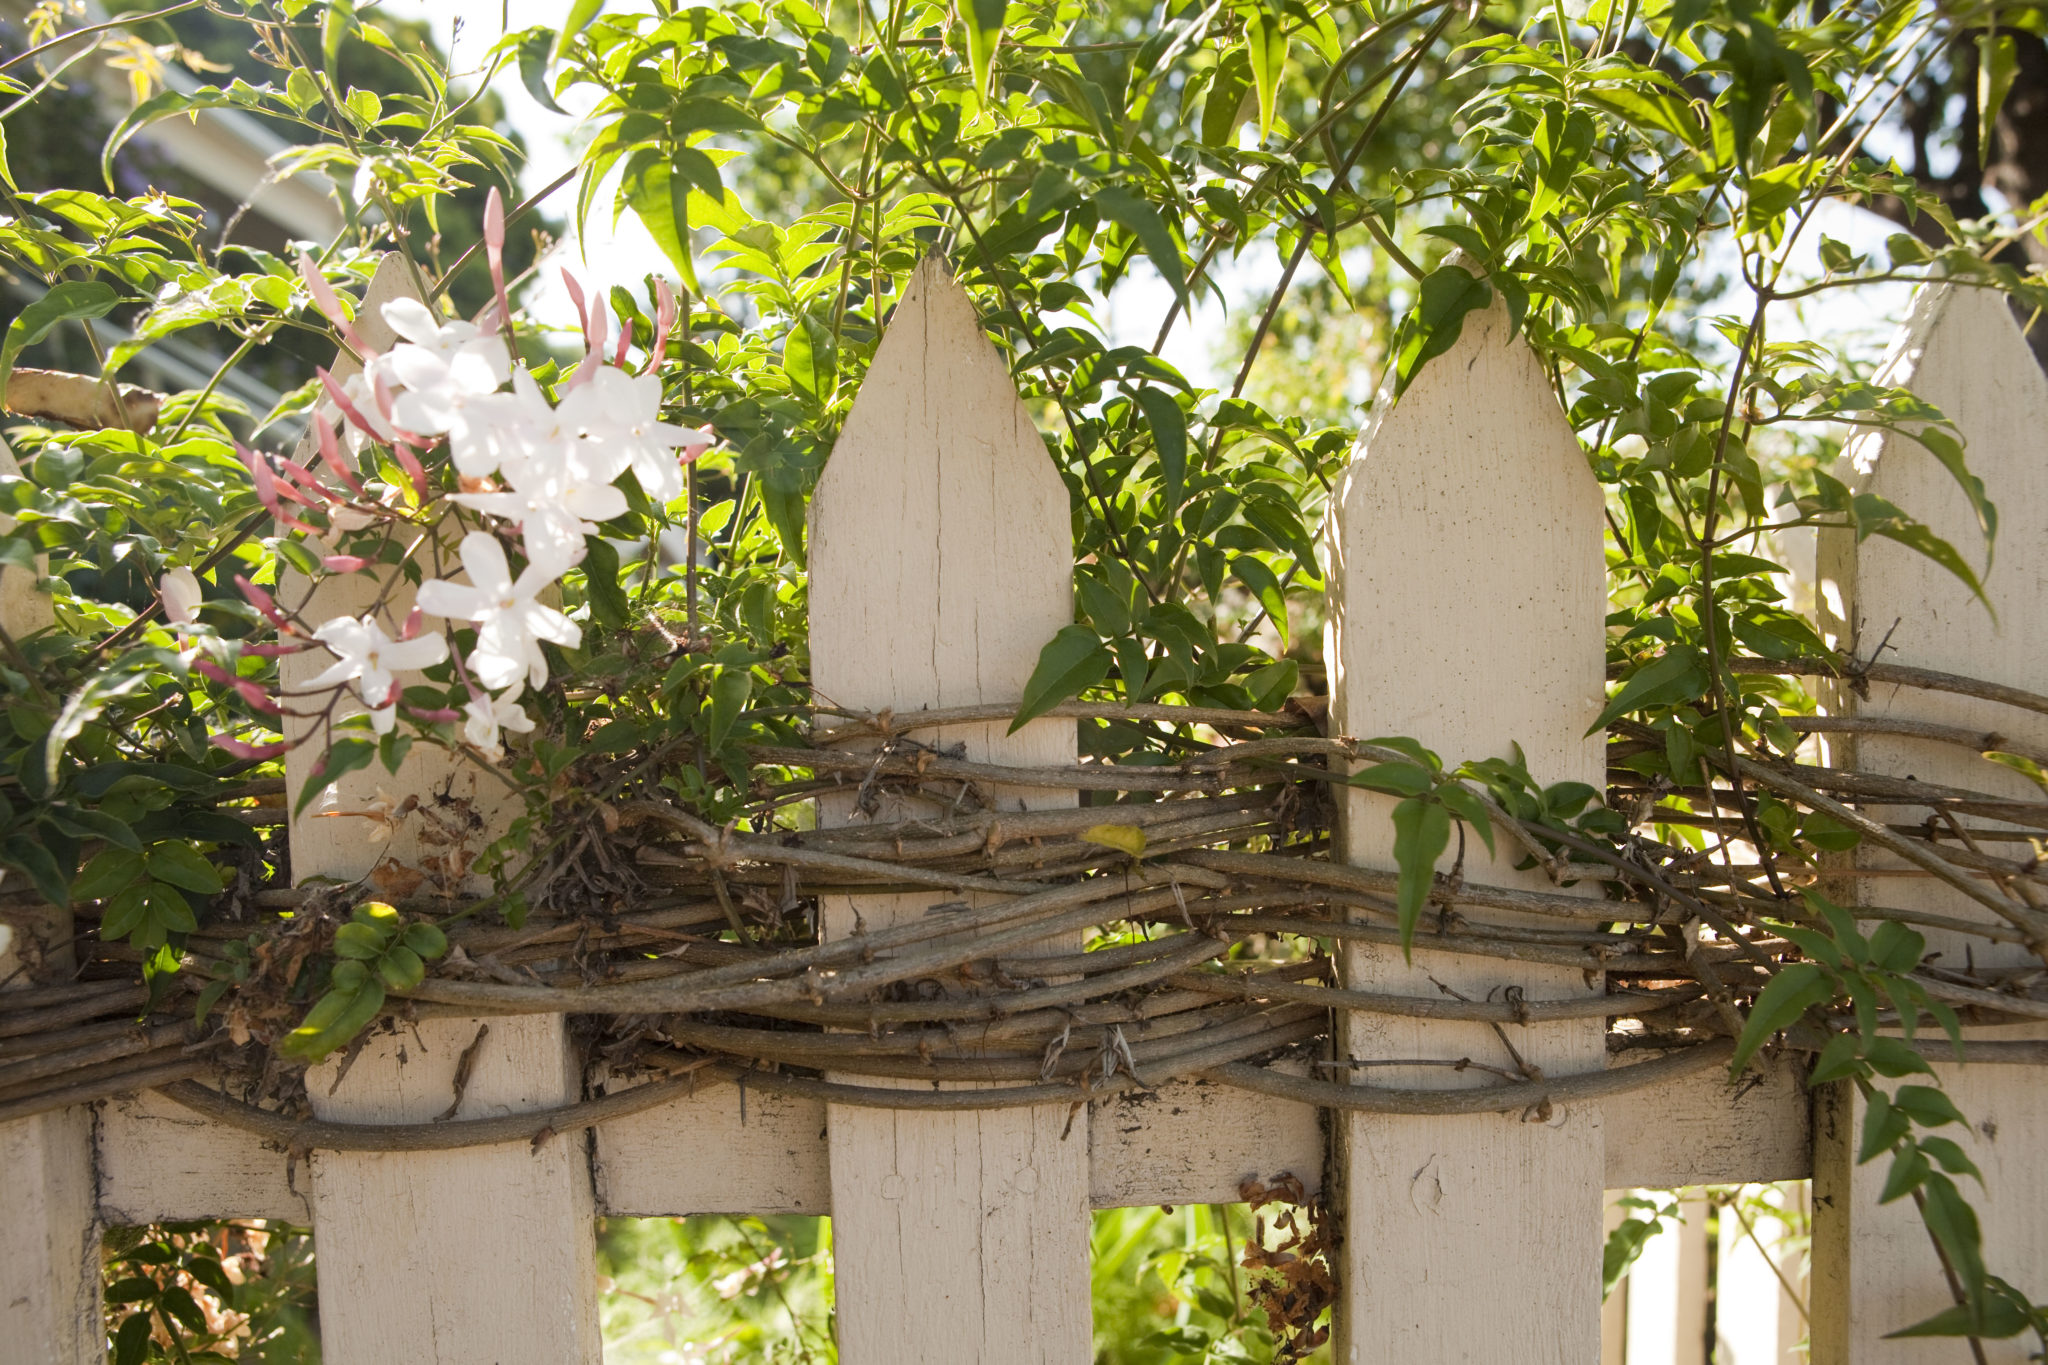 Basketry with Live Star Jasmine on Picket Fence